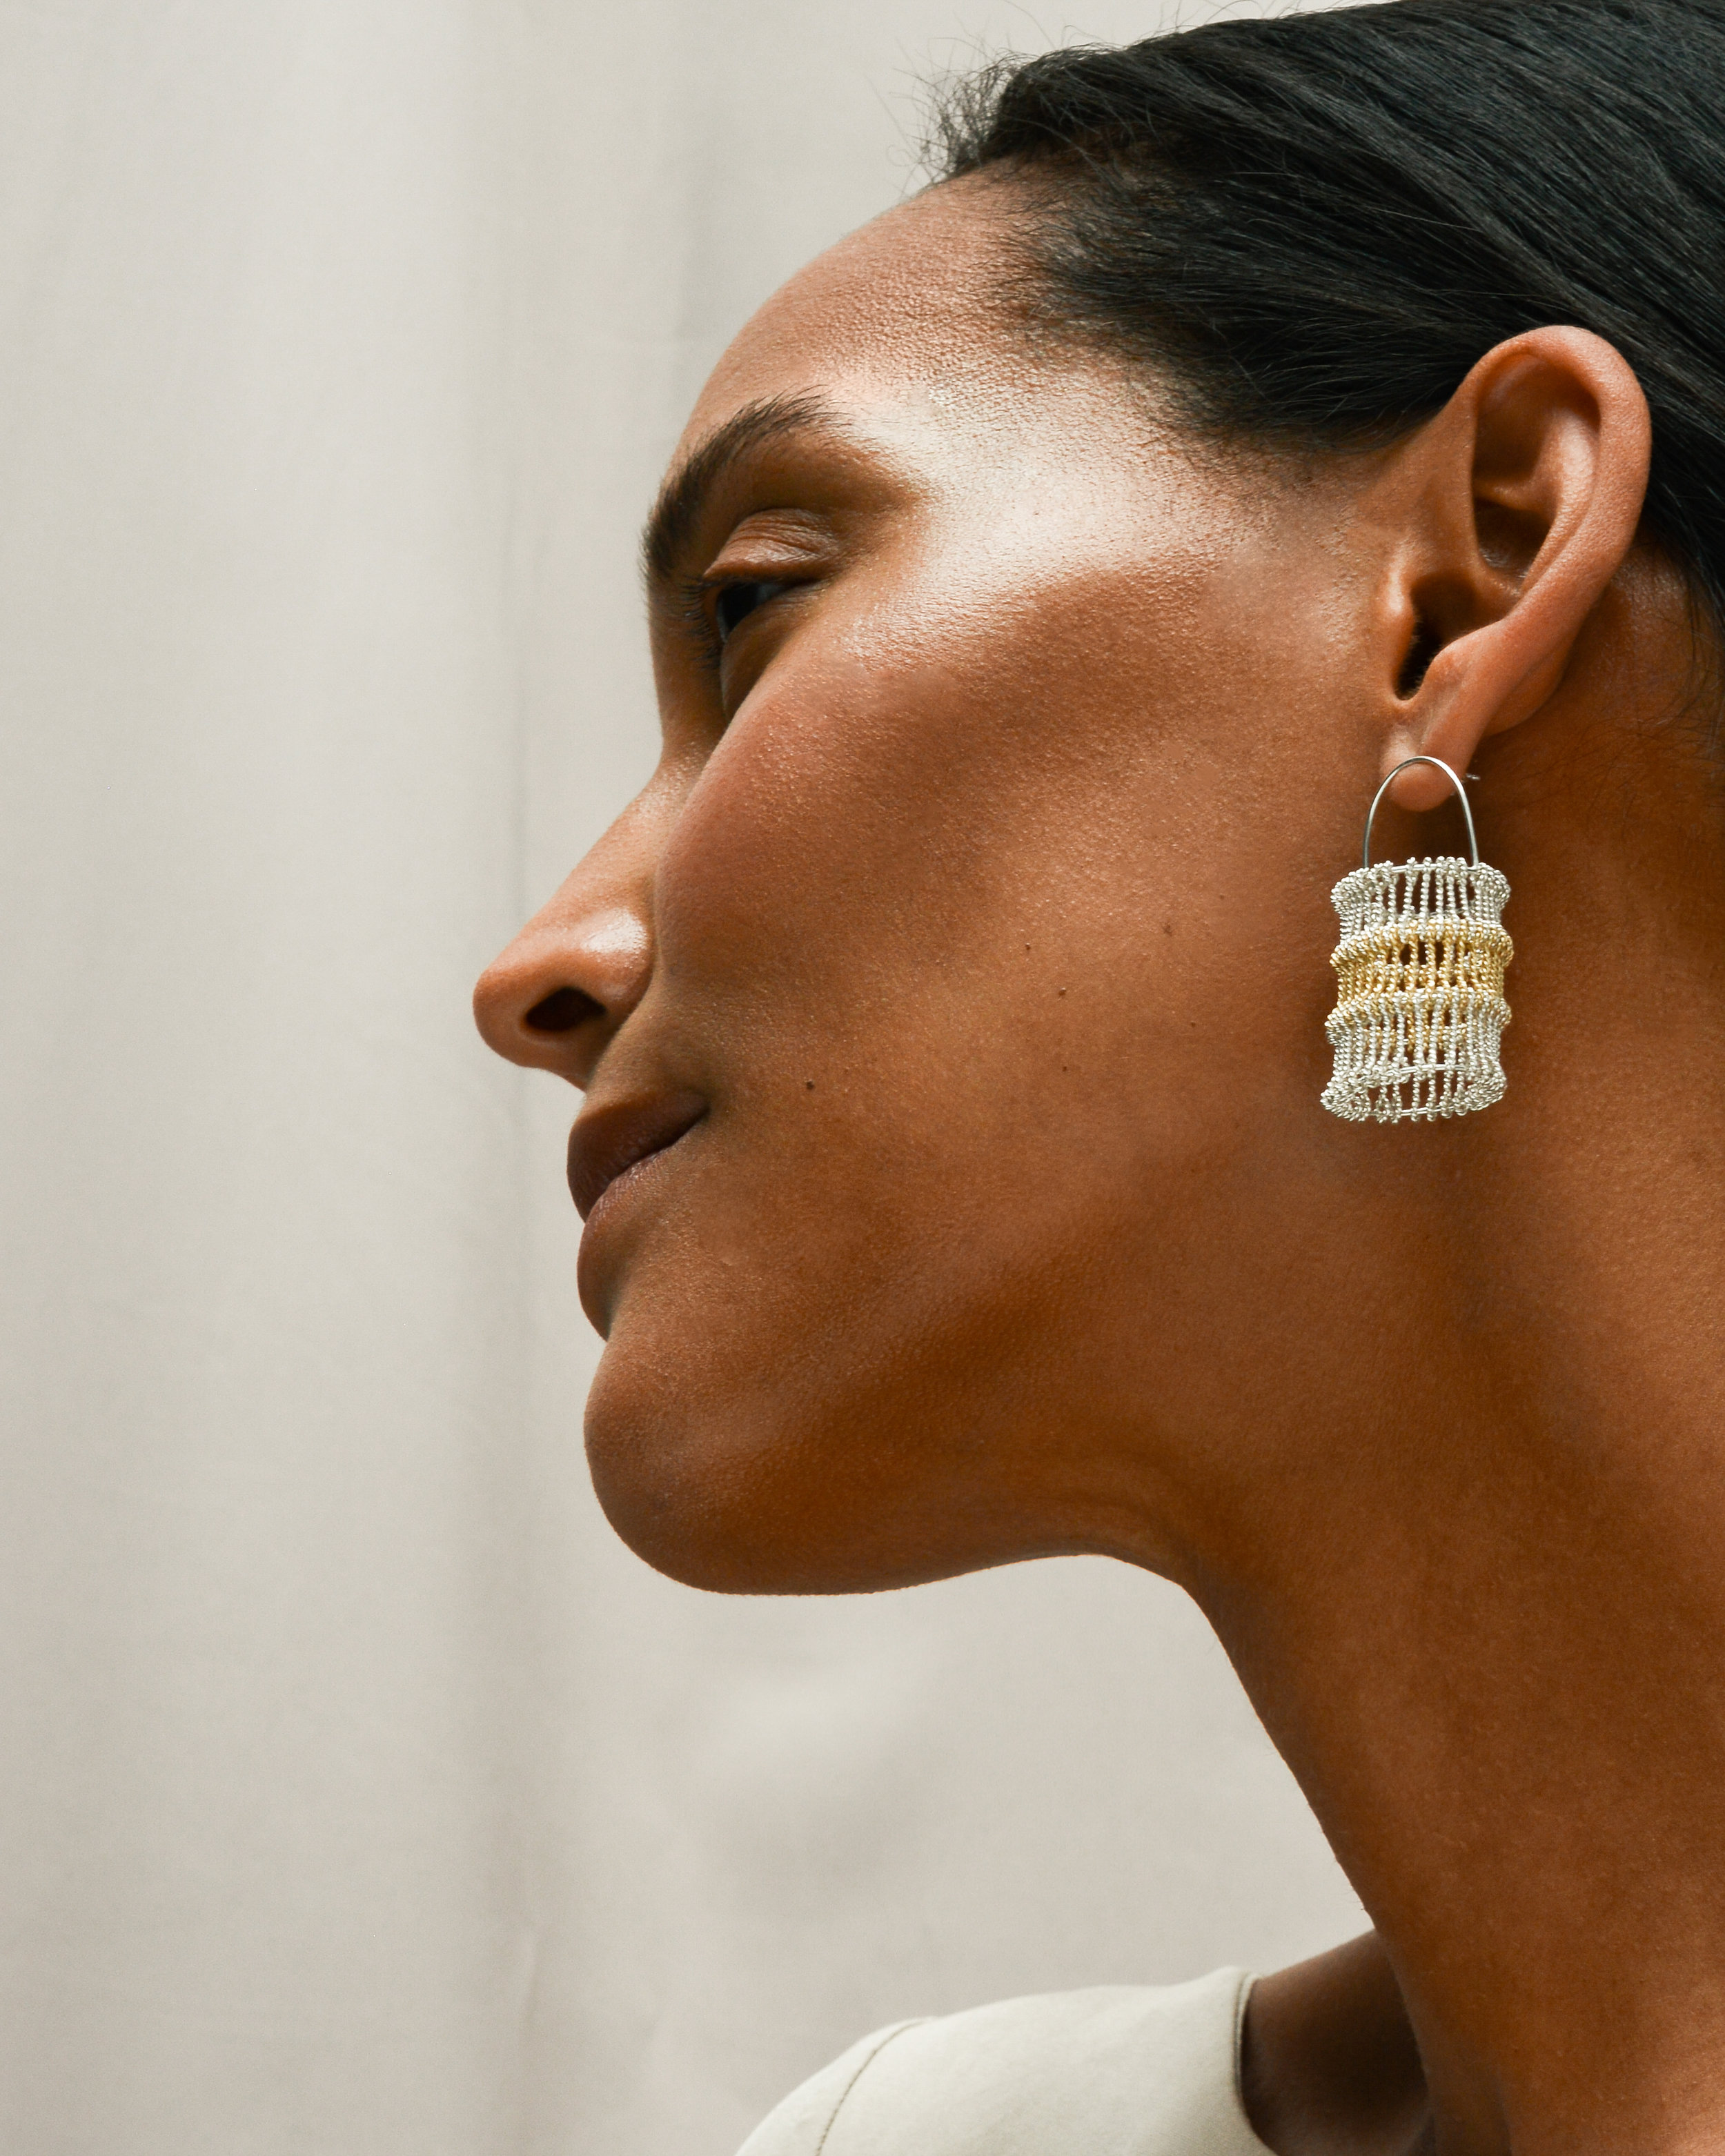 LEVEL HEDDLE EARRINGS  in 18ct gold and sterling silver Photography -  Stark Studio  Model -  Dieny Itoe  MUA -  Shaun Lavender